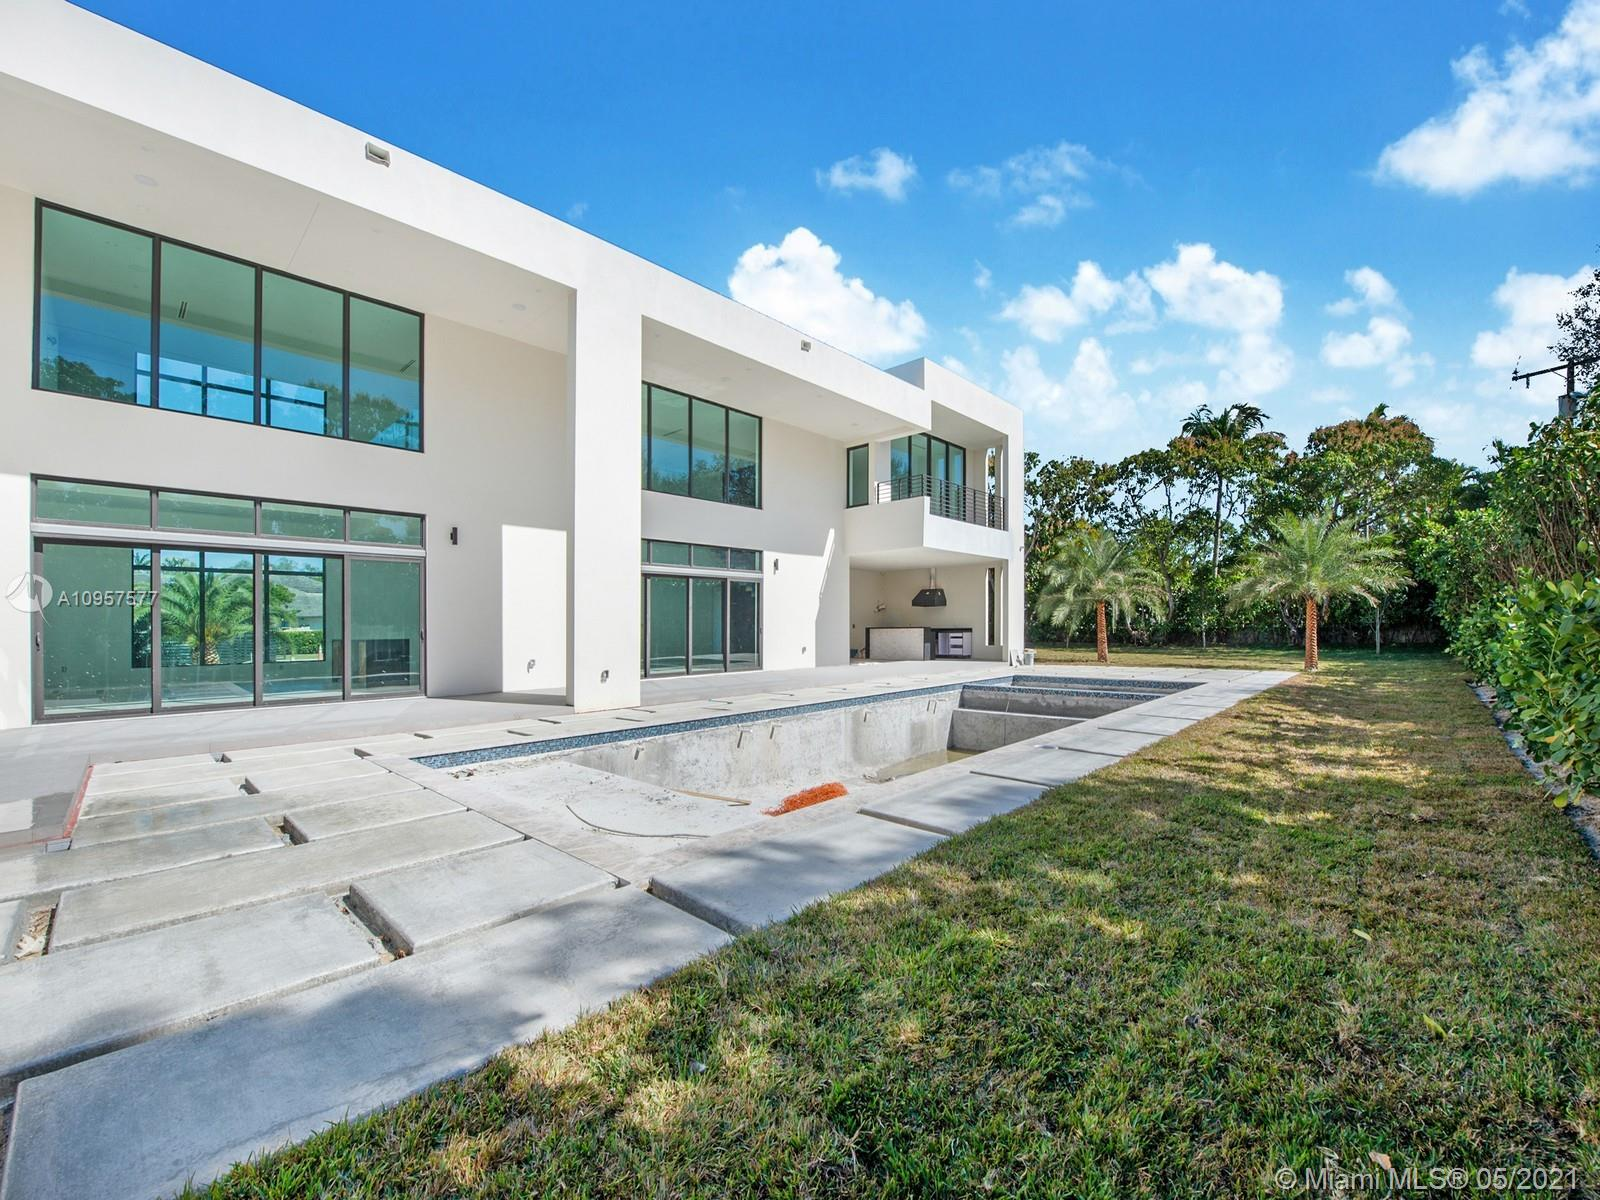 Spectacular Brand-New Construction & nearly ready for occupancy in the heart of Pinecrest. This 2-story modern estate, rests on a spacious 37,897 sf lot offering an exceptional open floor plan spanning 7 beds & 8/1 baths. Welcomed by volume ceilings, enormous imp windows & doors offering plenty of natural light. Discover a modern eat-in kitchen w/Italian cabinets, quartz counters, walk-in pantry, Wolf & SubZero Appl. Enjoy expansive living areas, family rm, dining rm, plus upstairs den/office space. Master suite offers large walk in closet, spa-like bath w/ Grohe shower & separate soaking tub. An outdoor retreat awaits w/extravagant resort style pool/spa & summer kitchen on expansive green grounds. Other feat: maid's quarters, quiet street & elite Pinecrest Schools. 1-year builder's warr.